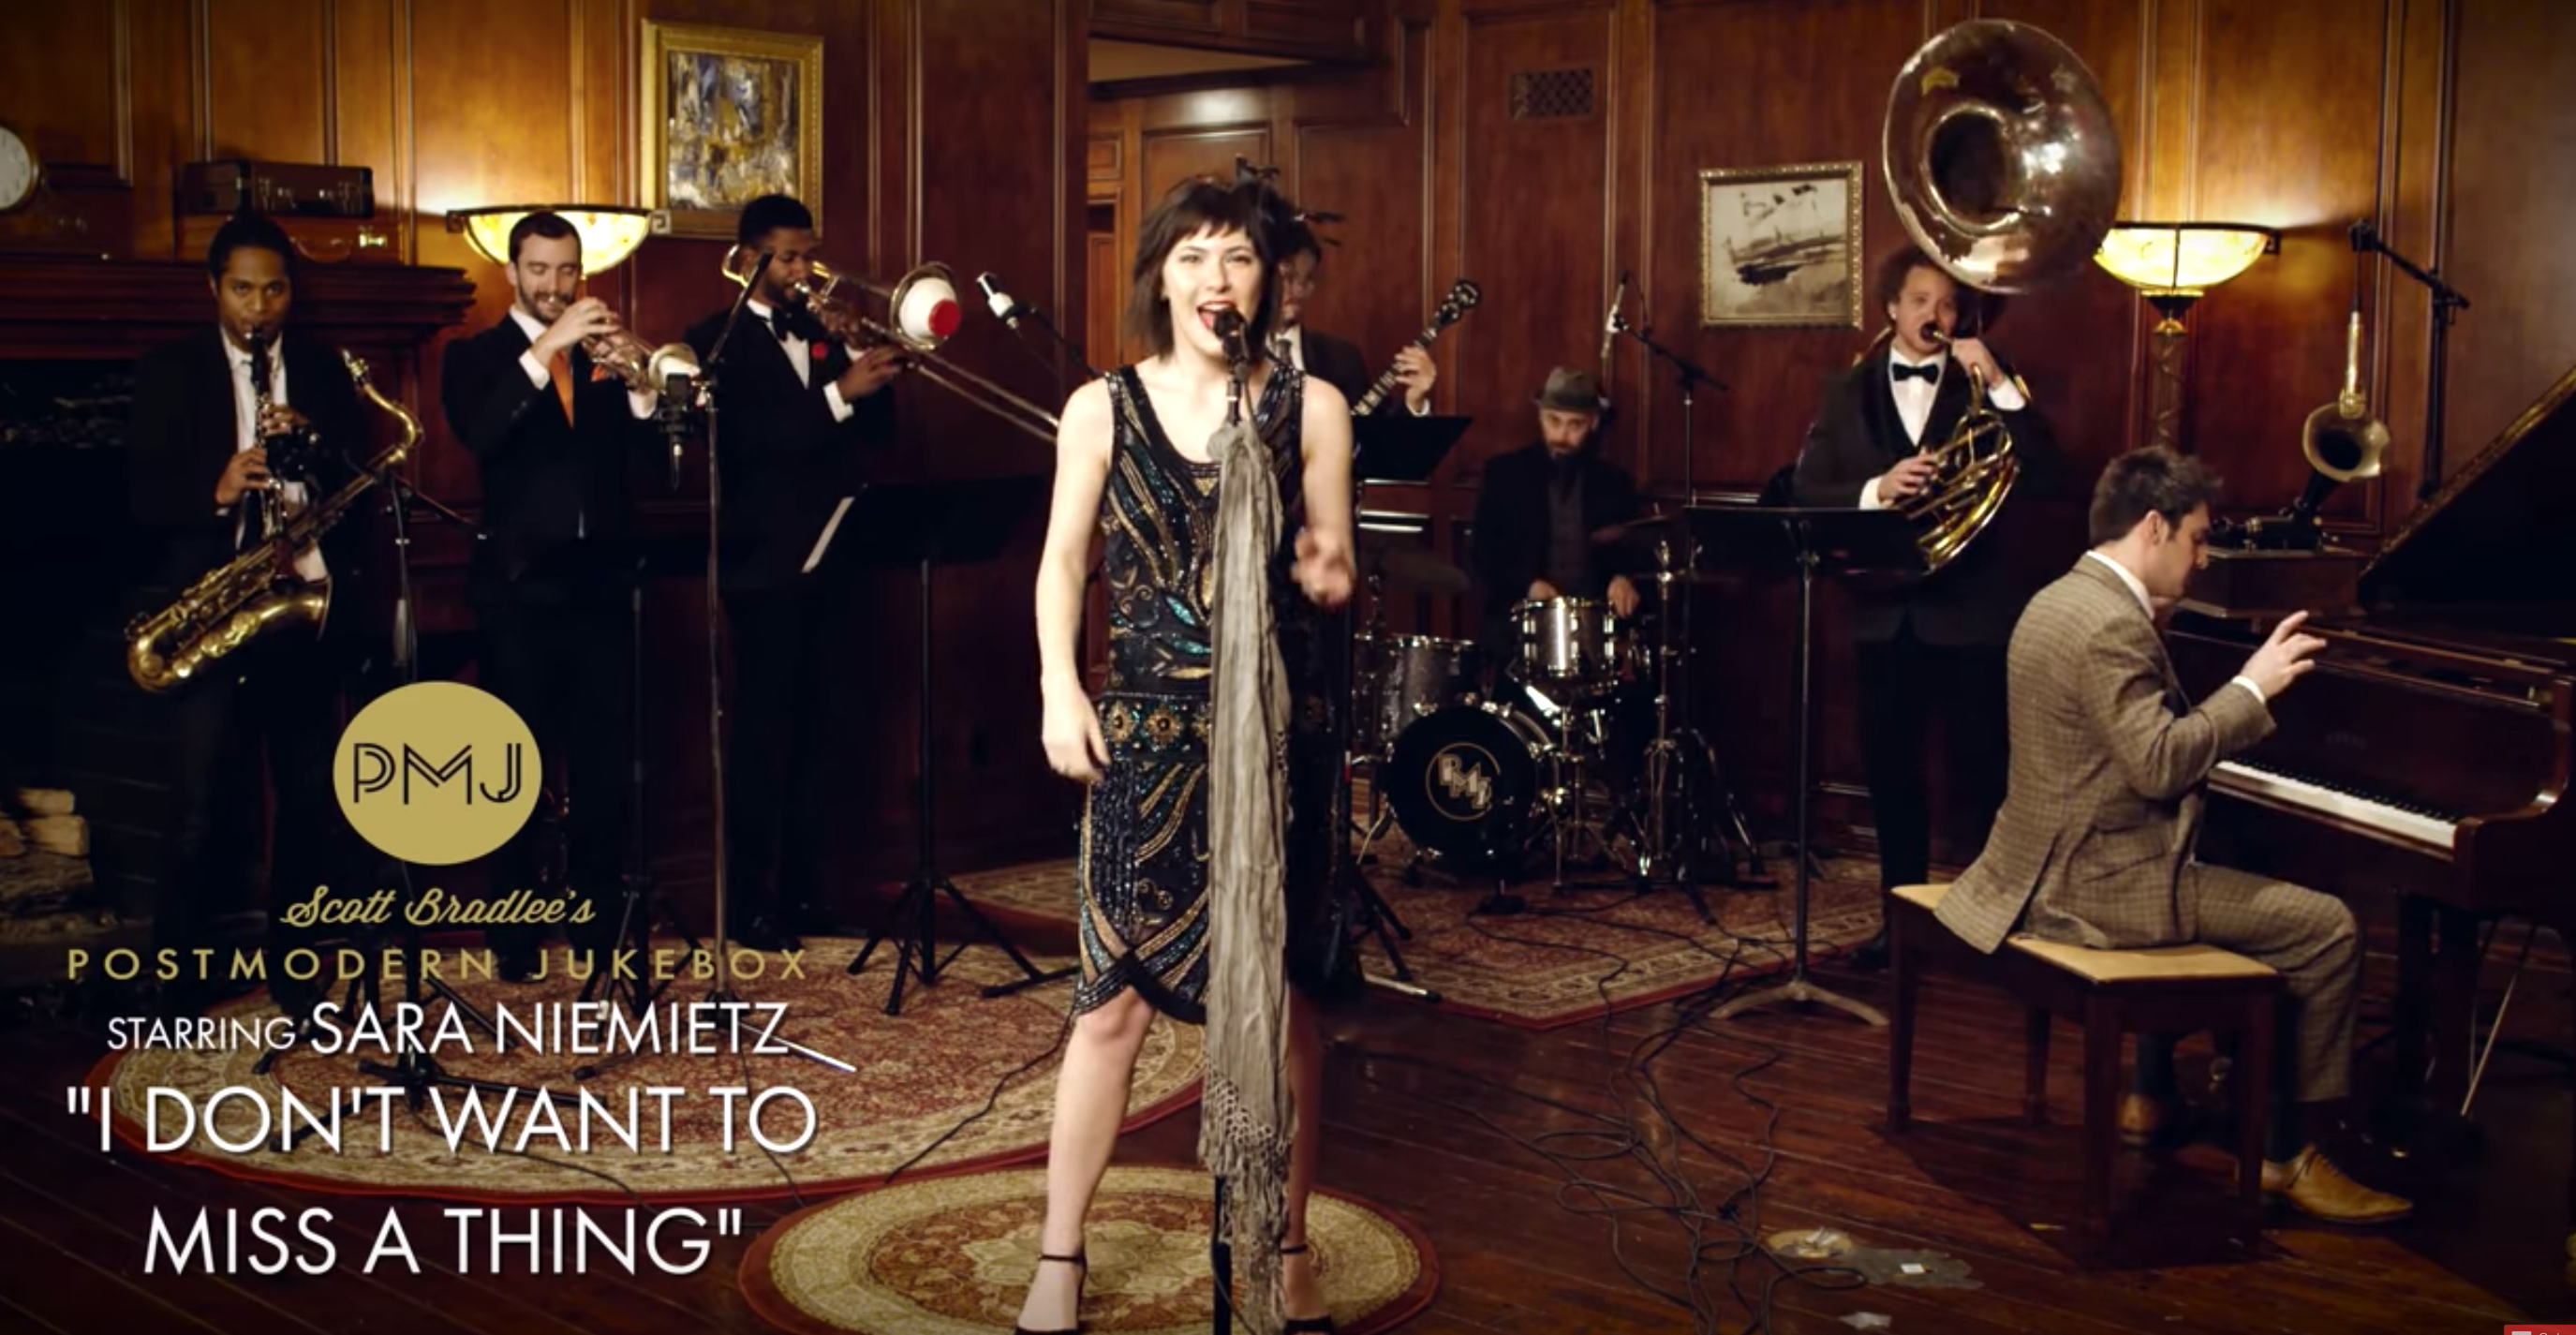 I Don't Want To Miss A Thing – Aerosmith (1920s Brass Band Cover) ft. Sara Niemietz